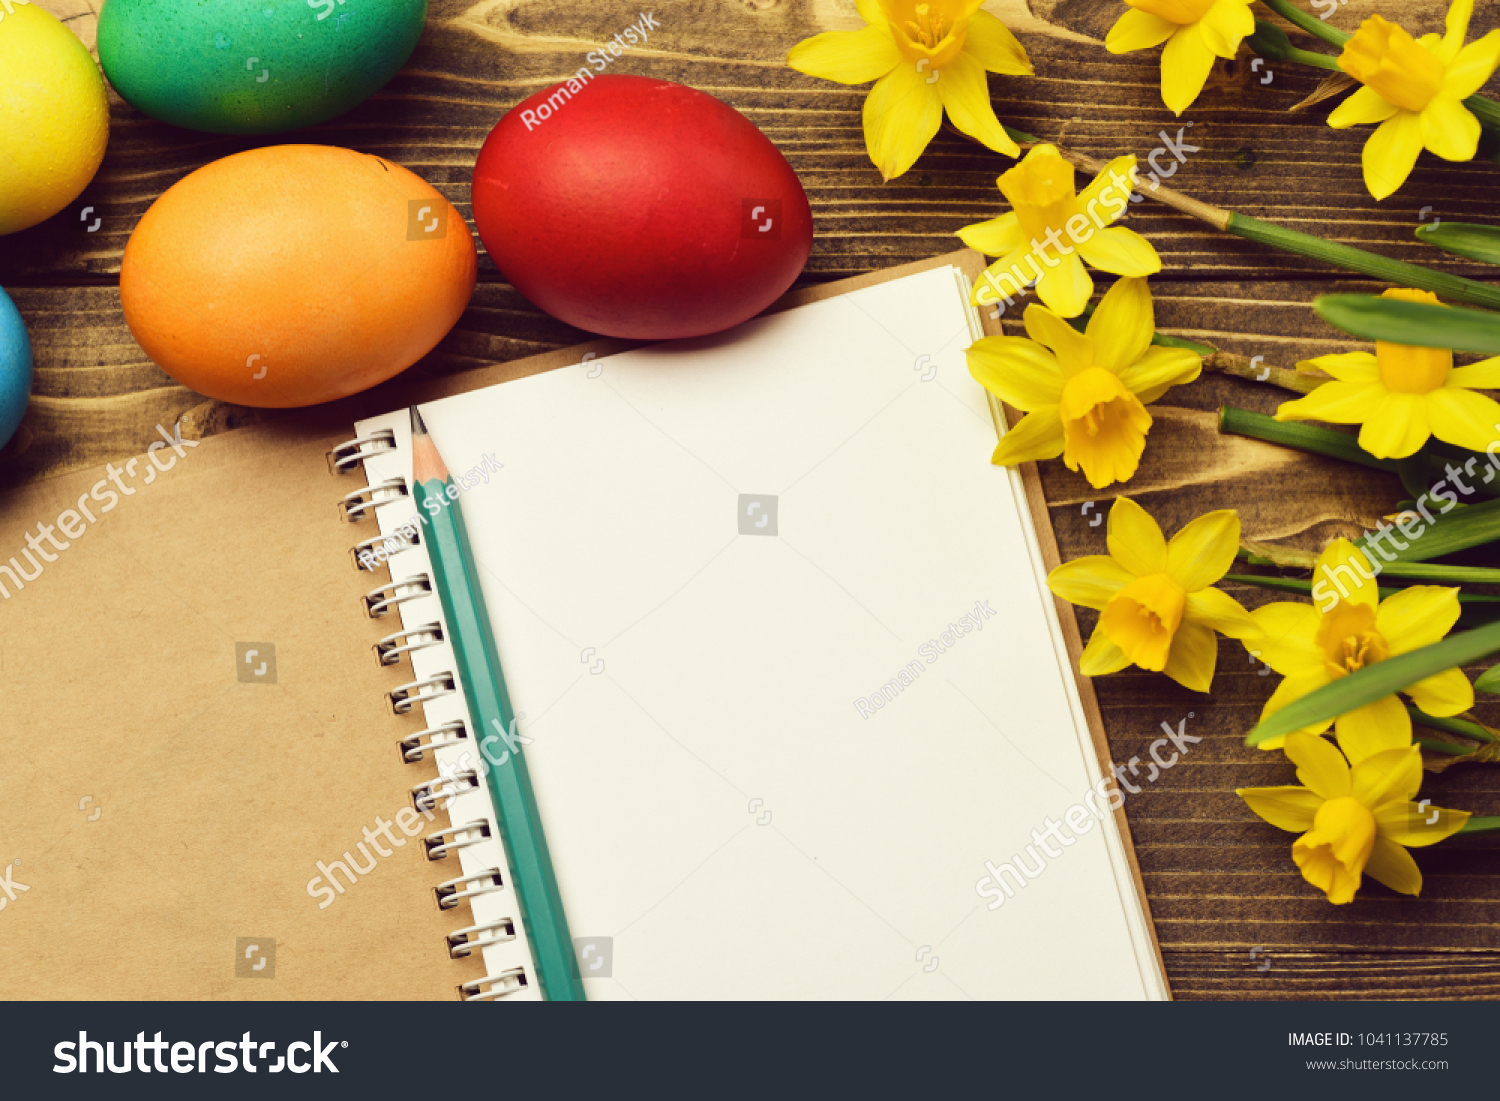 Drawing pencil and paper notebook colorful painted eggs spring yellow narcissus flower on wooden